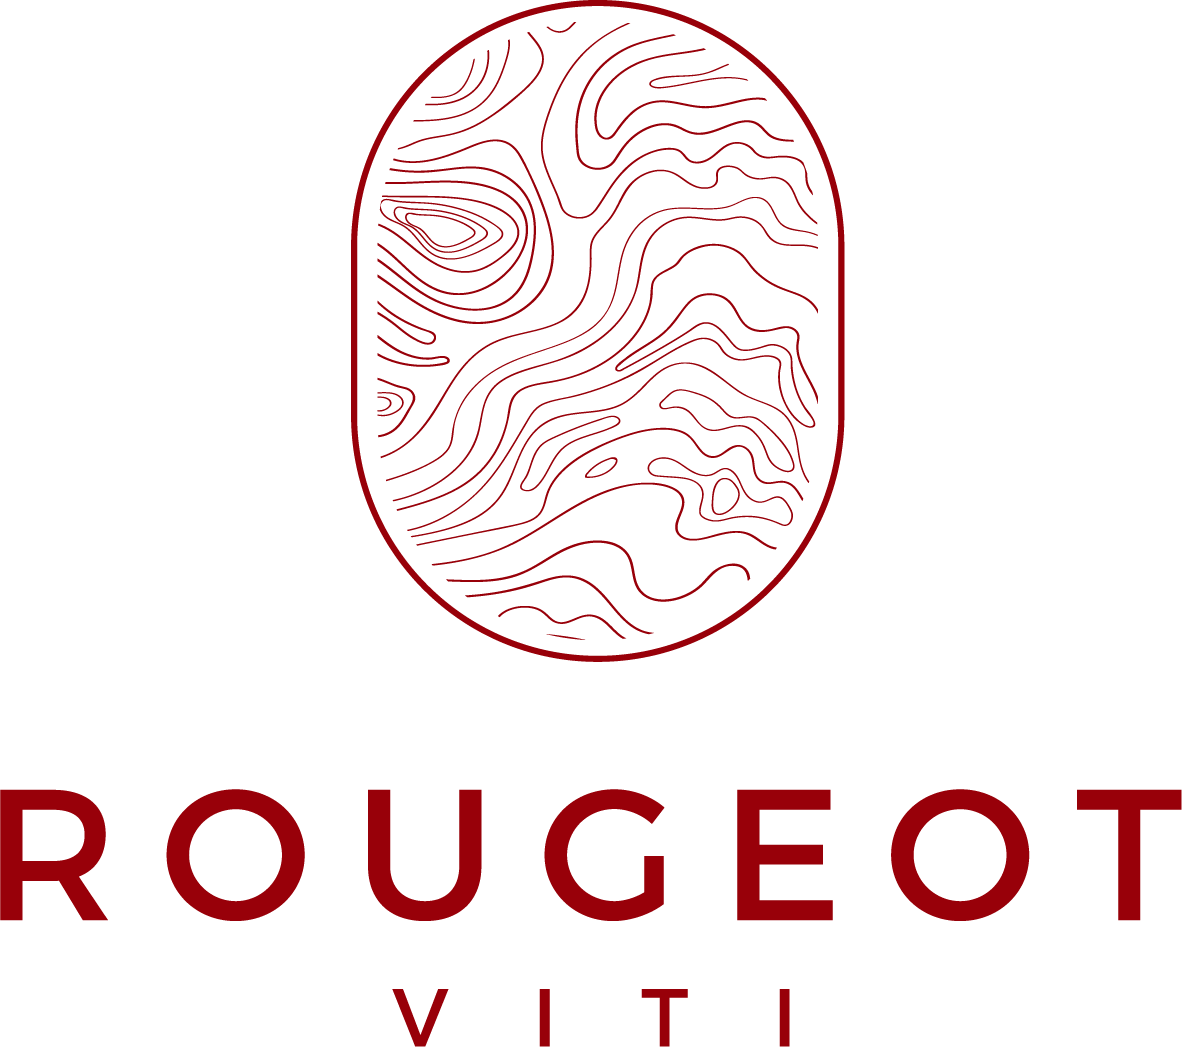 Saint Vincent Tournante 2021 - Rougeot